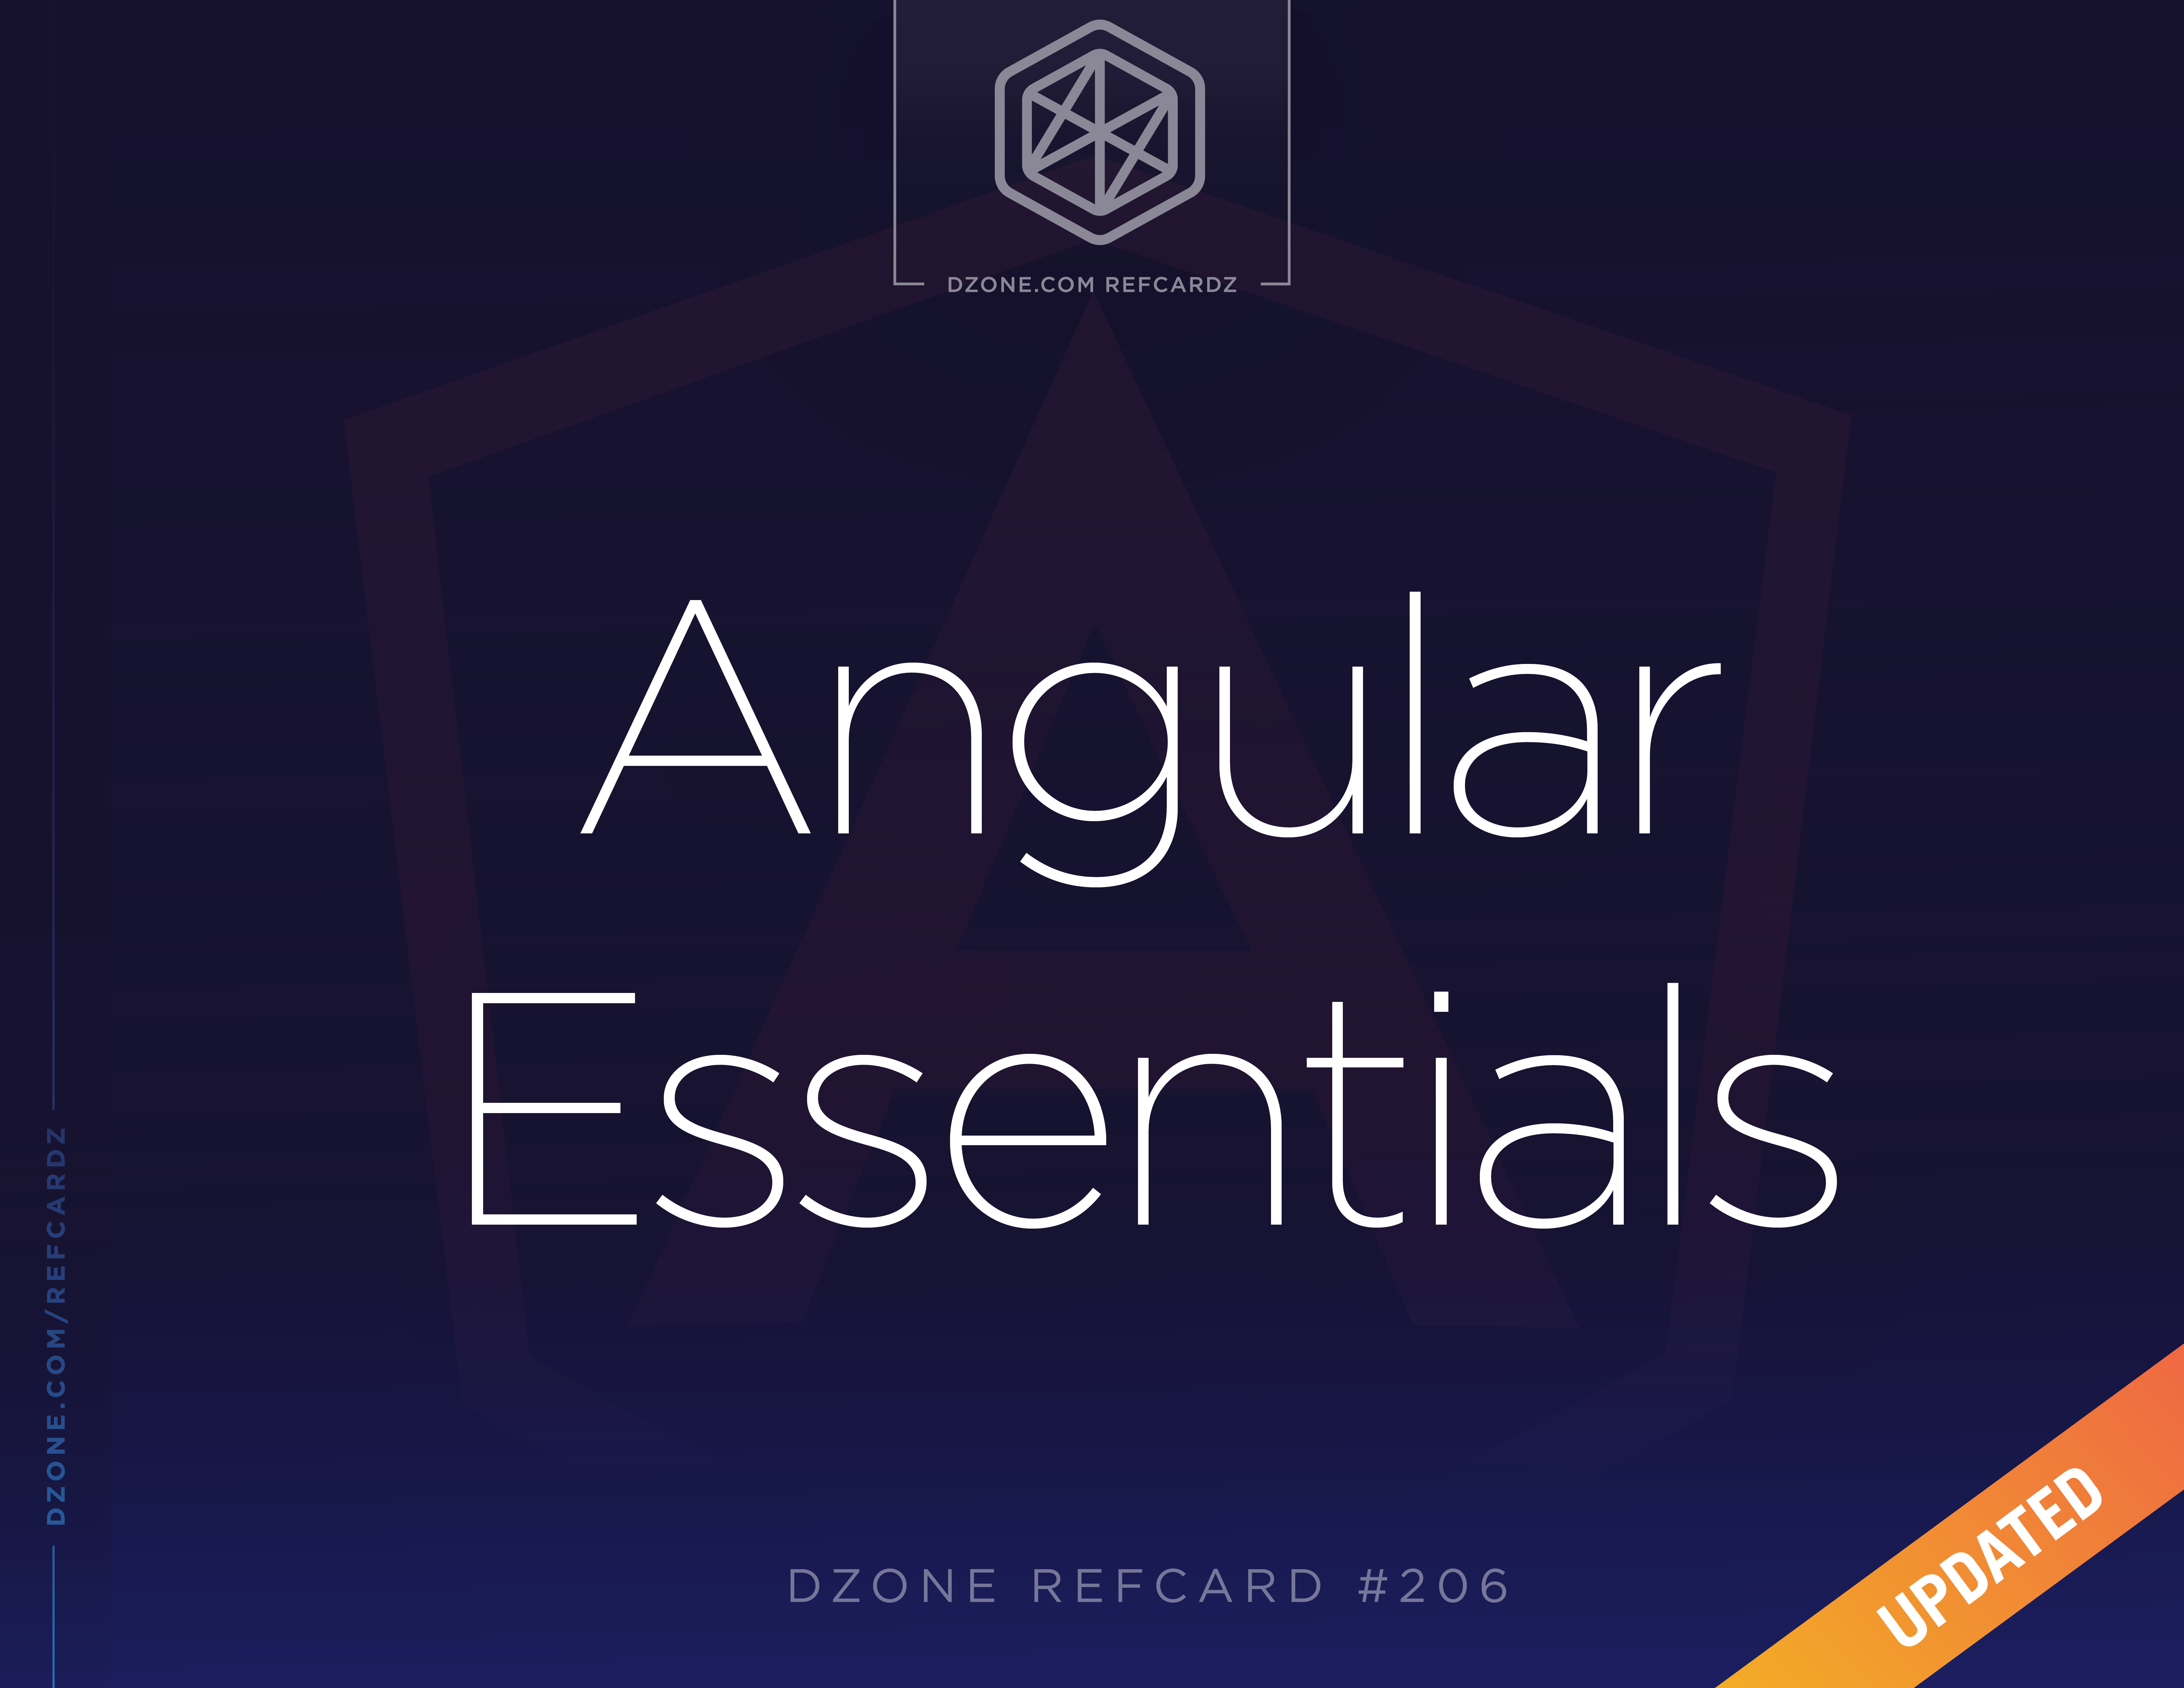 Angular Essentials - DZone - Refcardz